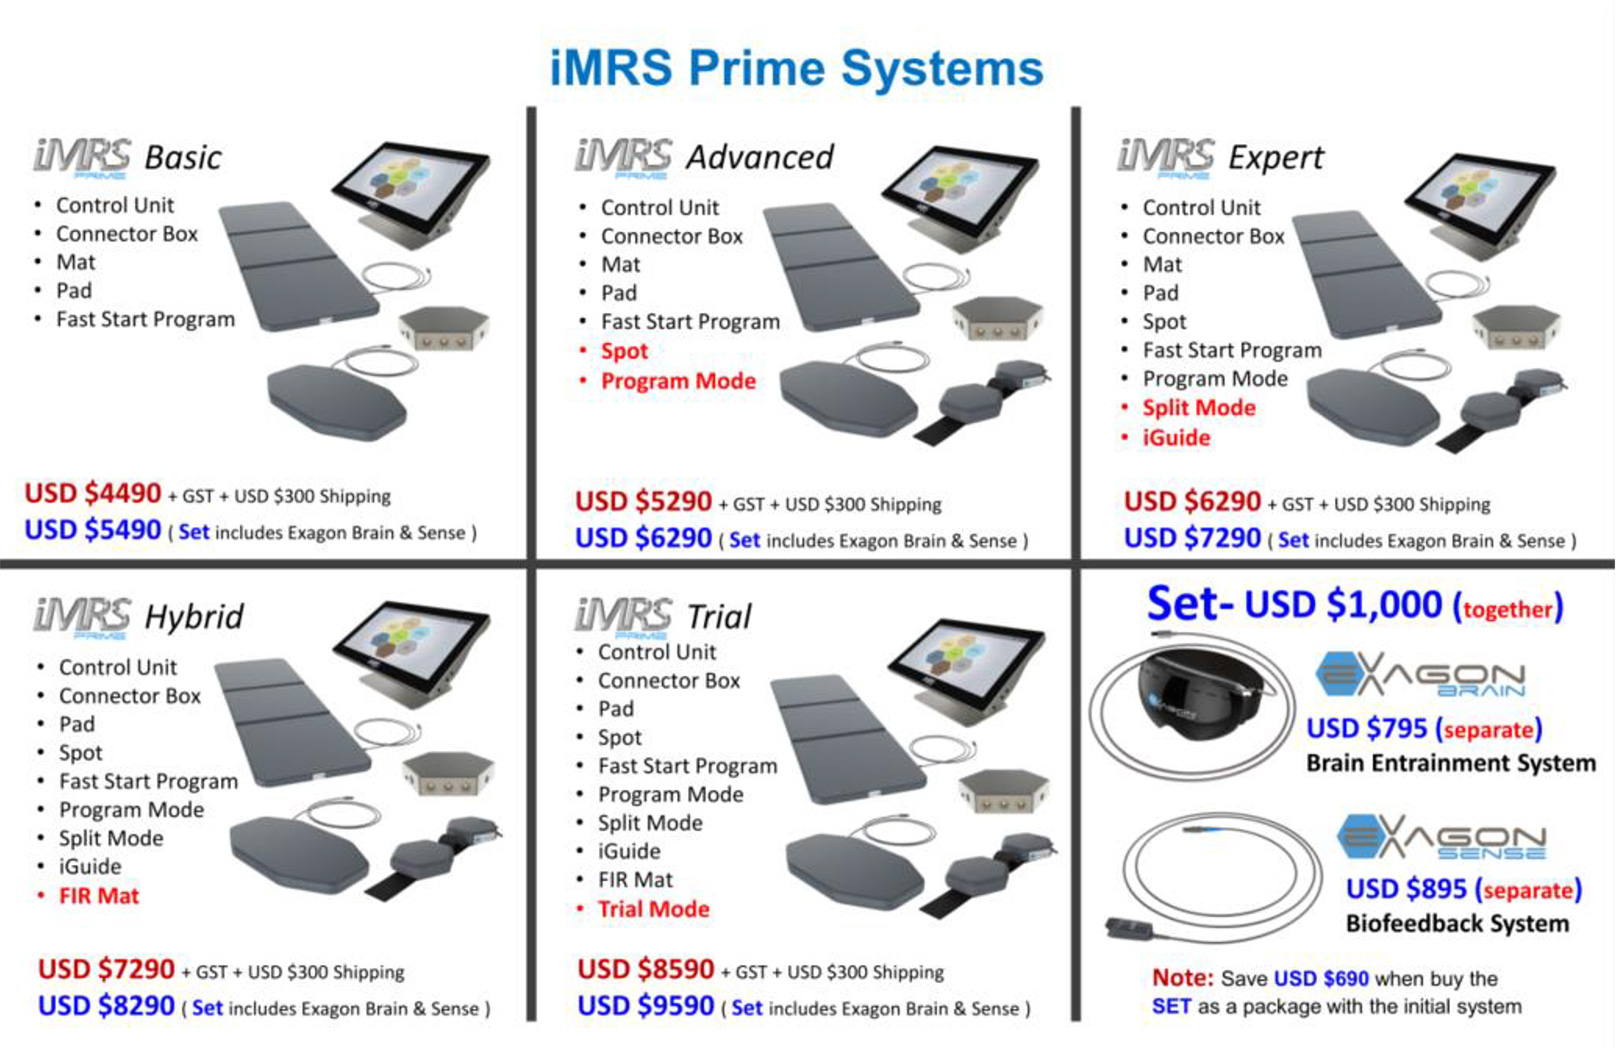 imrs_prime_systems_chart